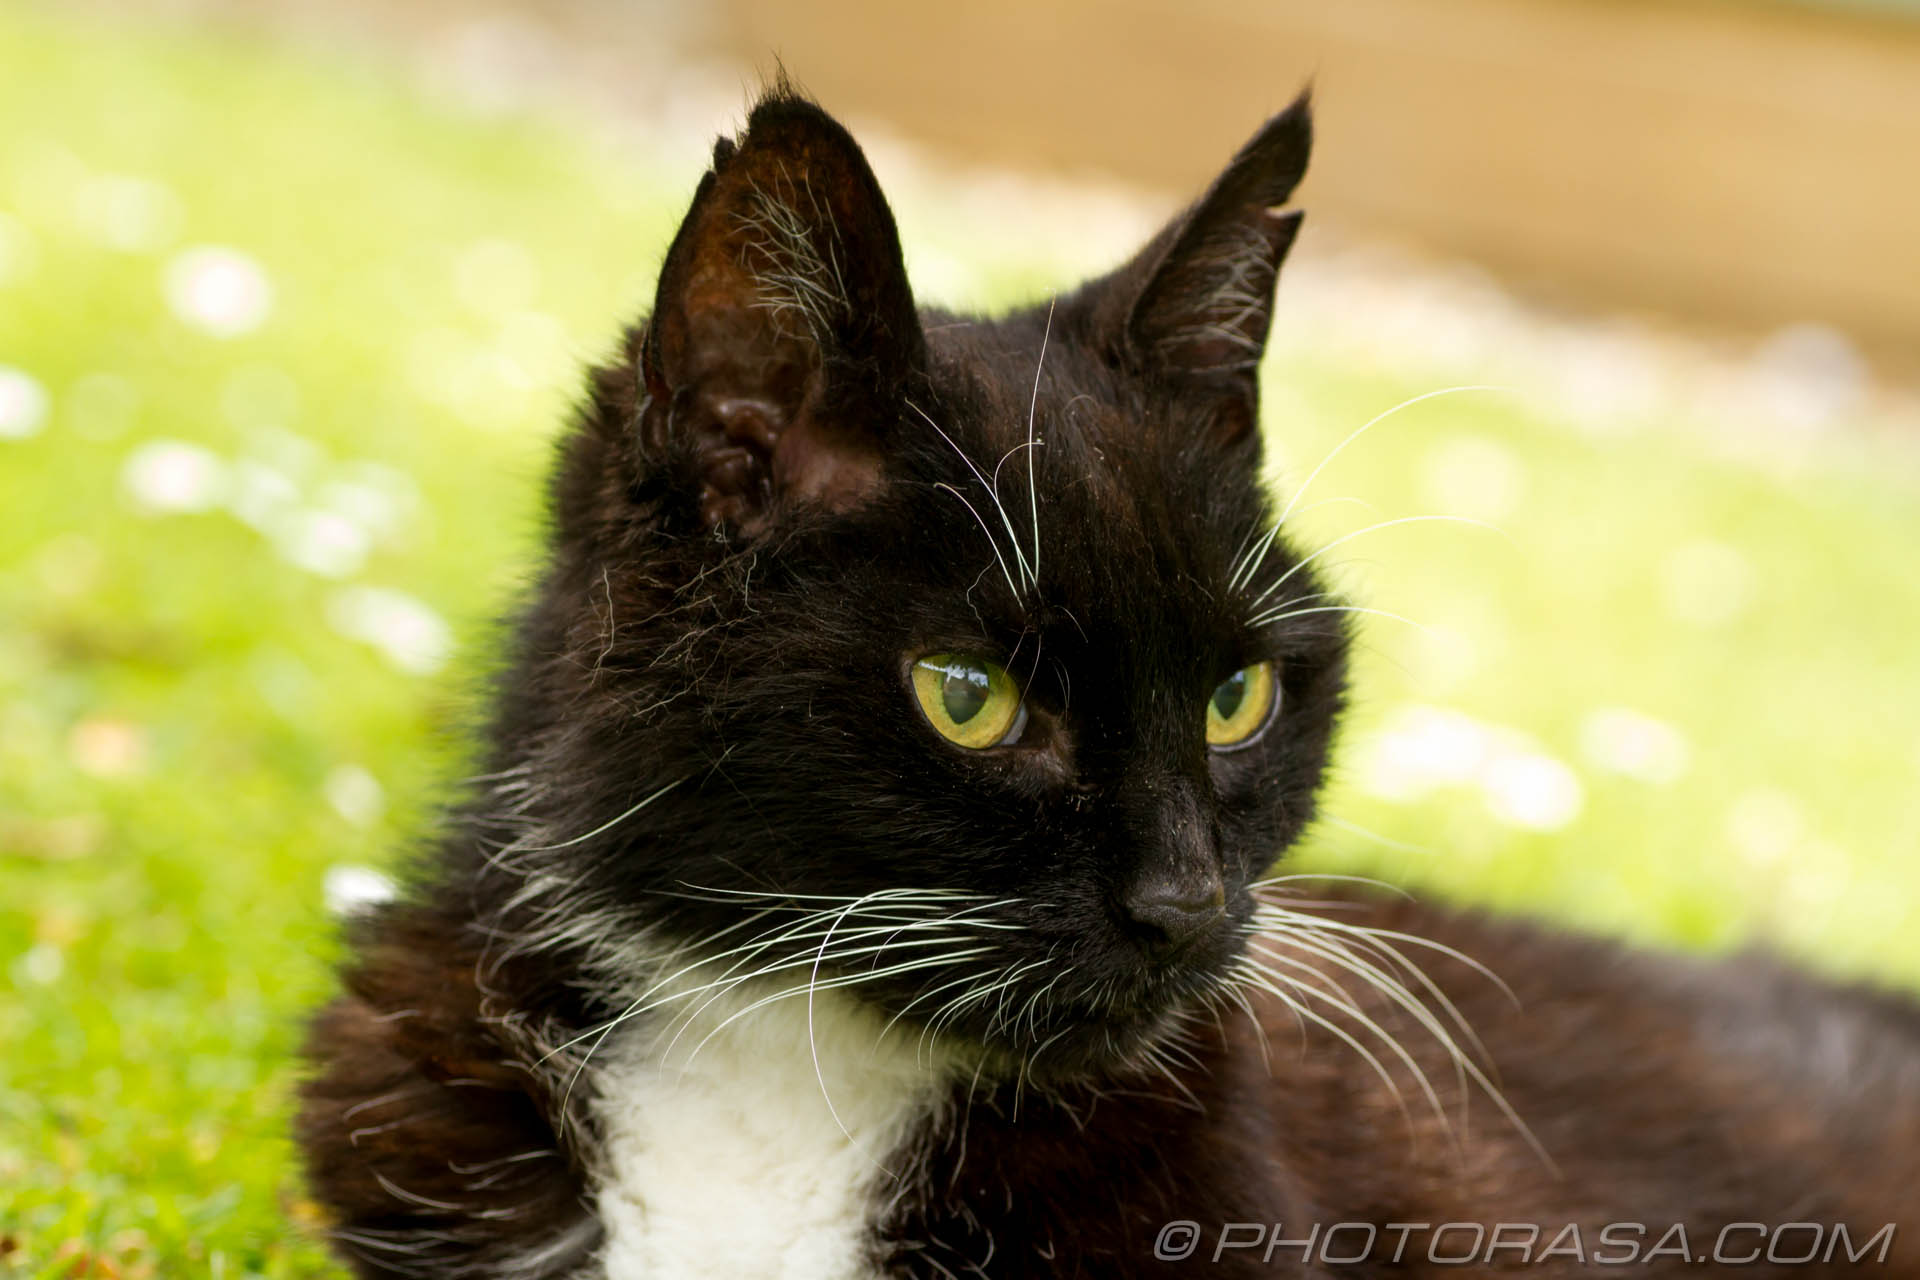 http://photorasa.com/black-white-cats/bedraggled-black-and-white-cat/